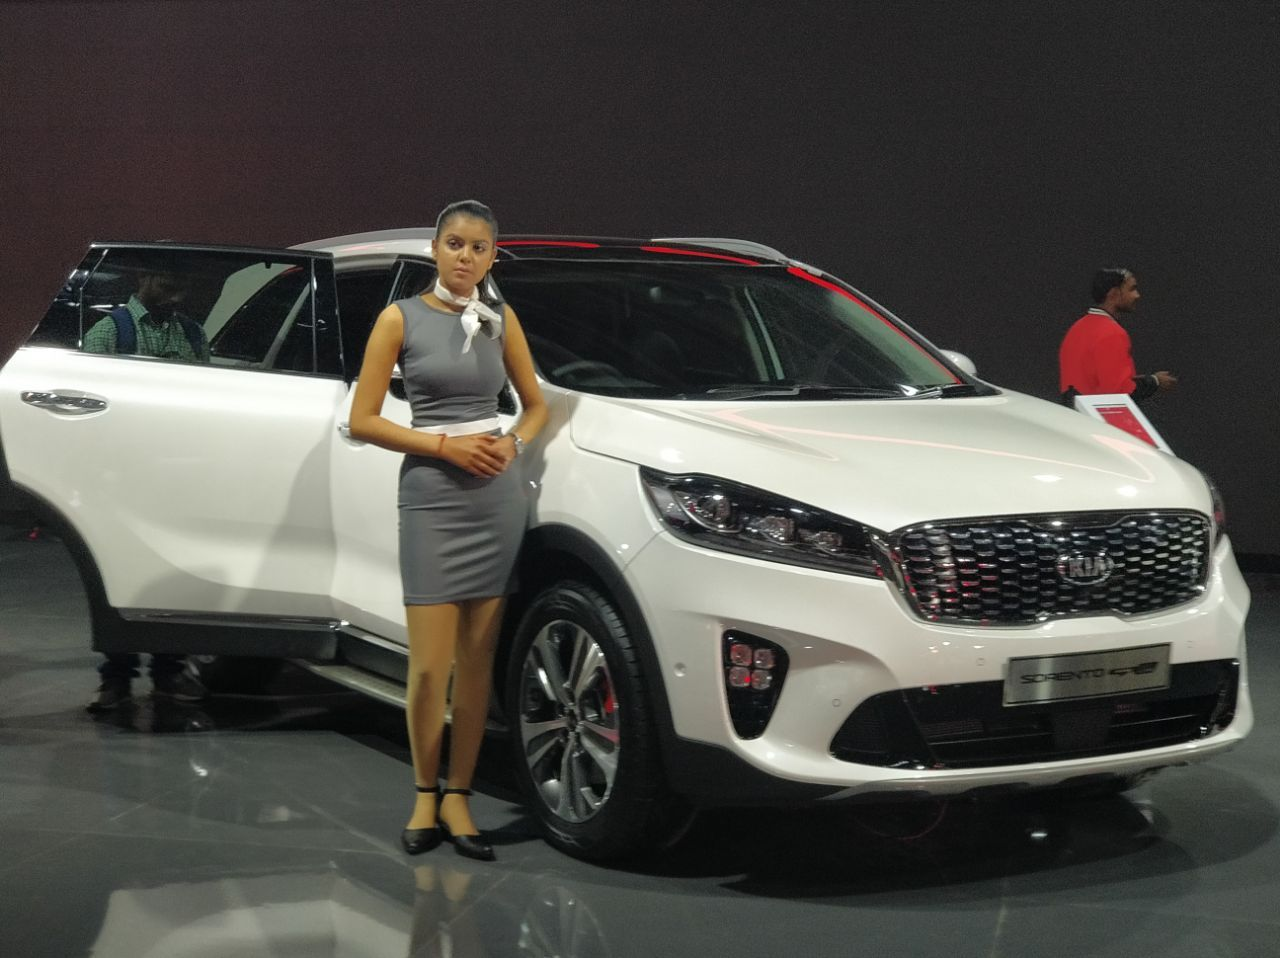 KIA8217s product line-up at Auto Expo 2018